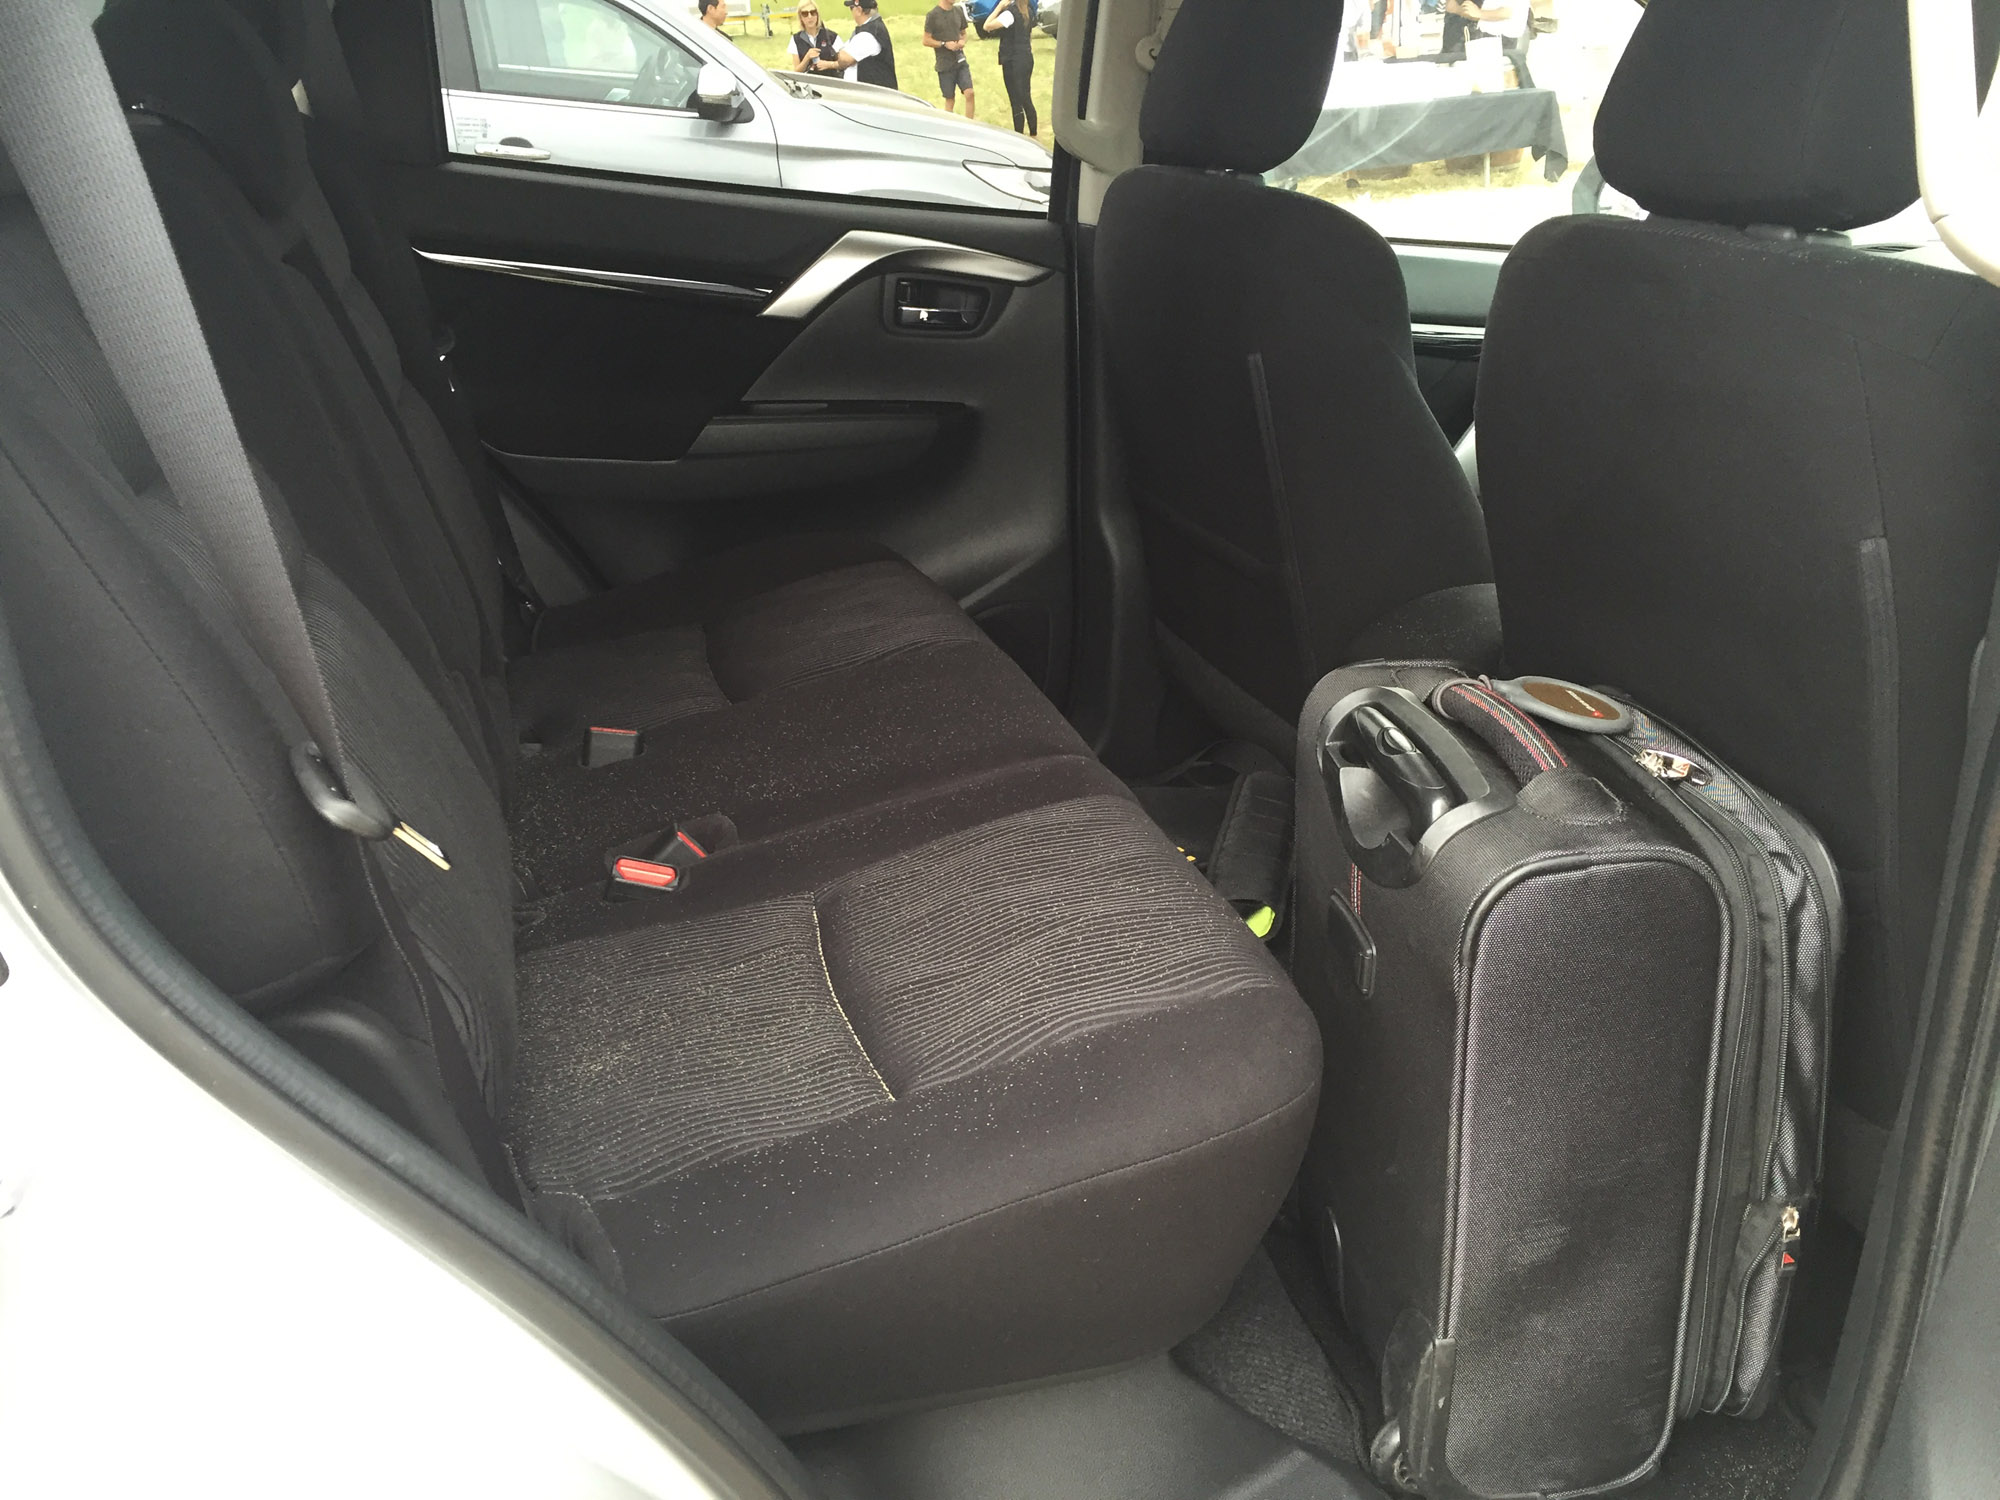 2016 Mitsubishi Pajero Sport Rear Seats Interior Space (Photo 17 of 23)